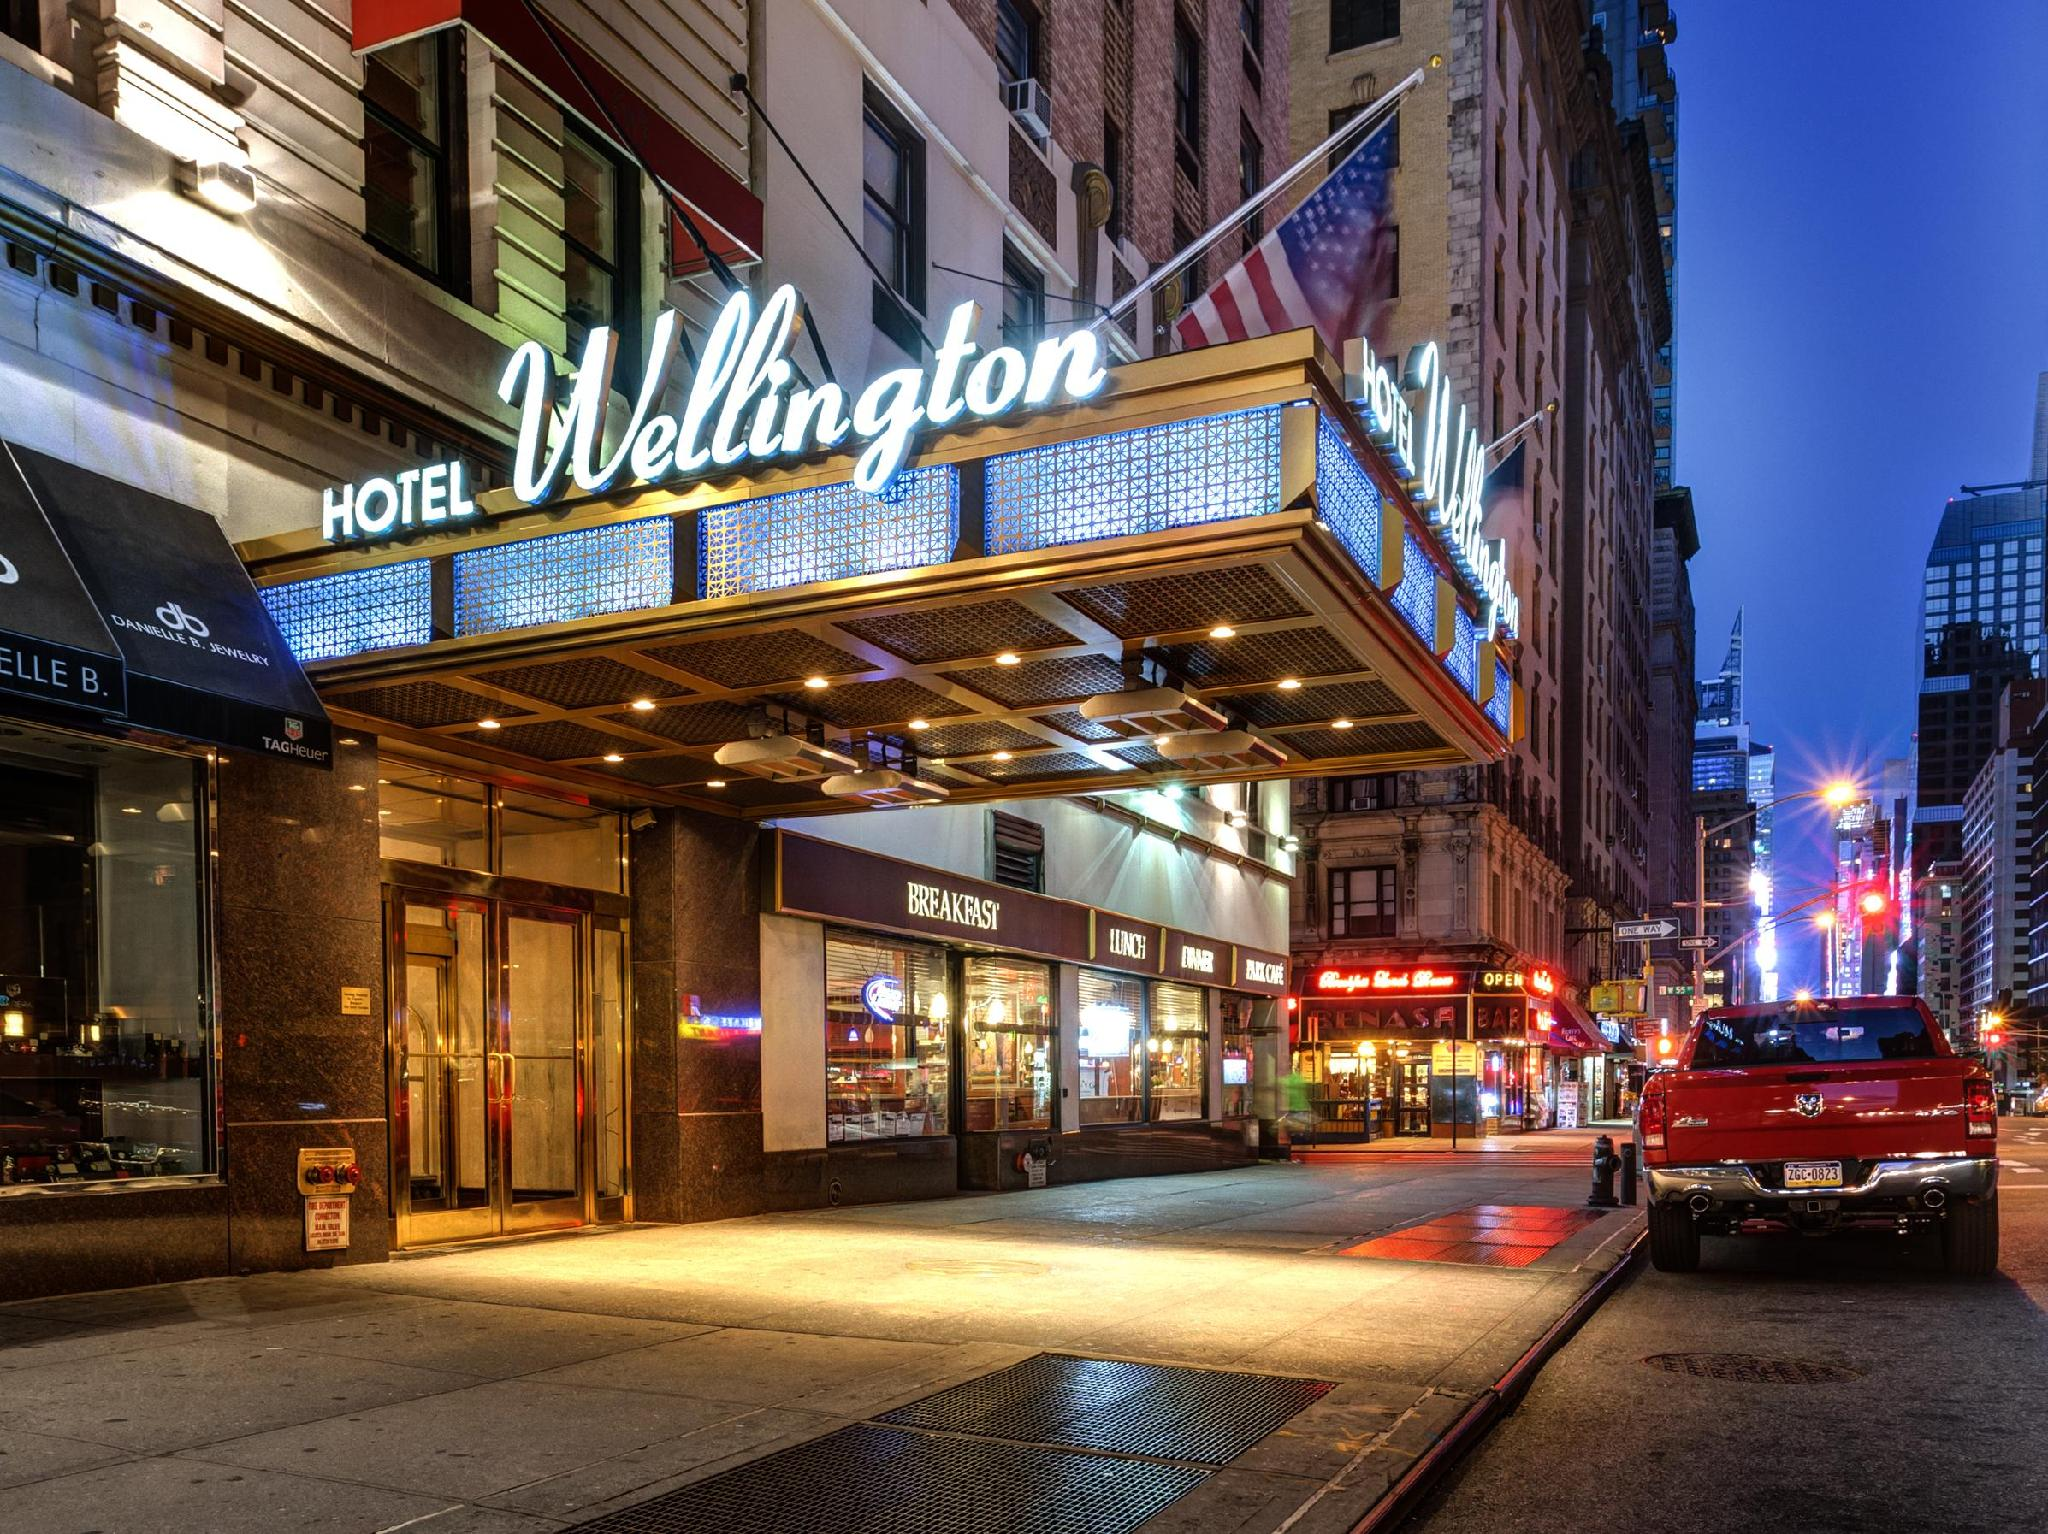 Wellington Hotel - Hotel and accommodation in Usa in New York (NY)